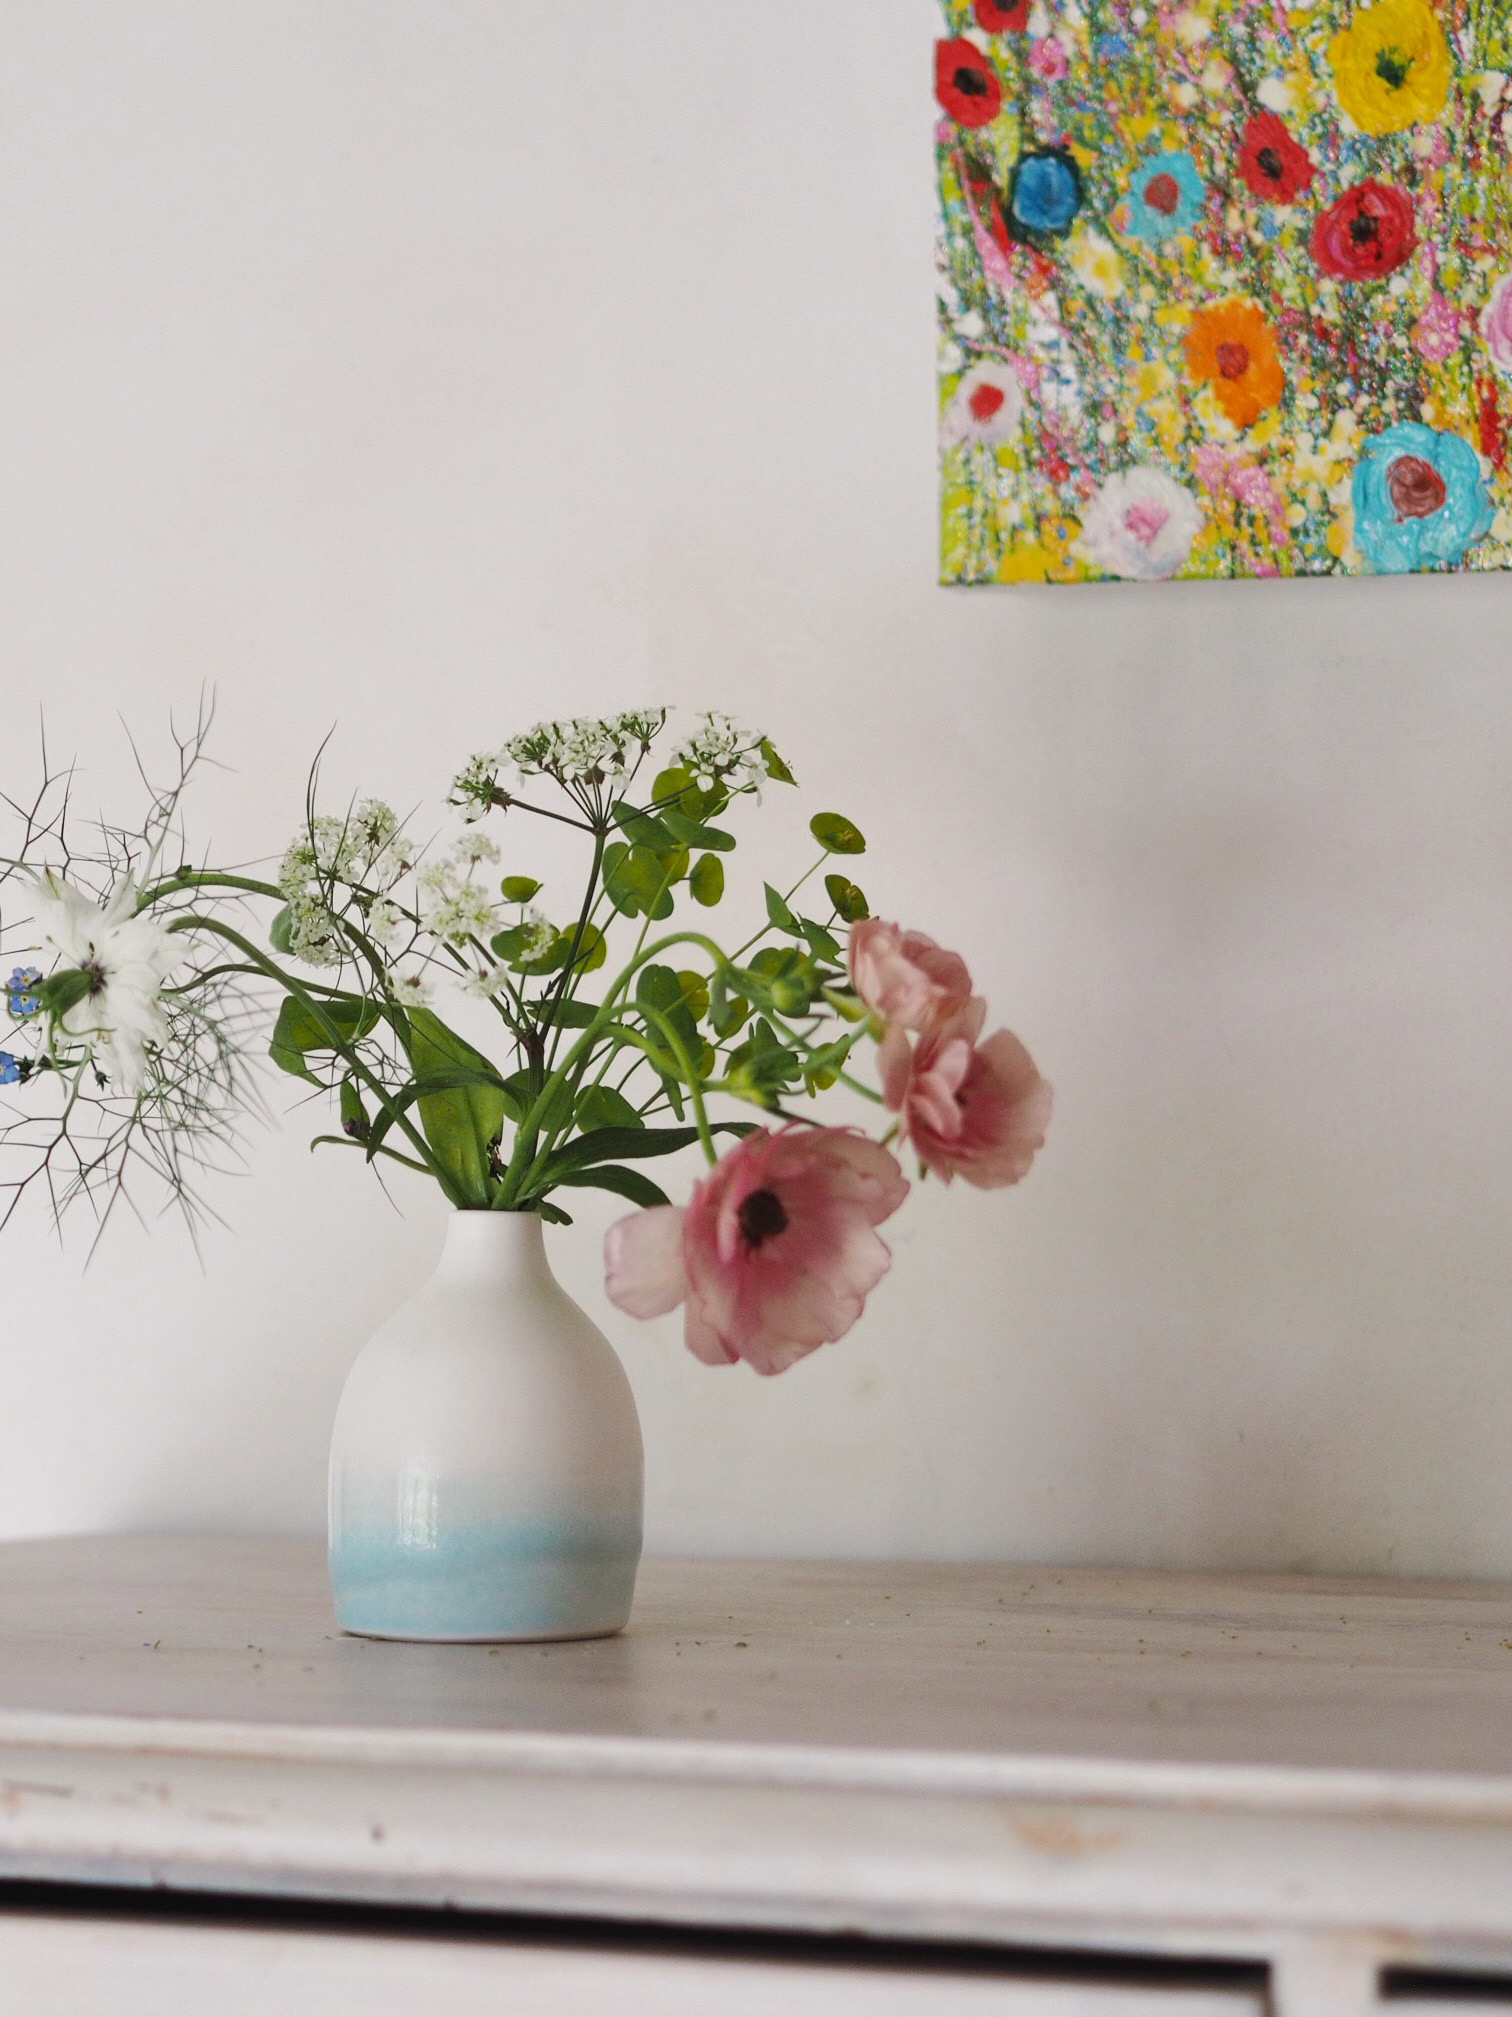 There were so many beautiful corners - here is one of my budvases, alongside Yvonne's work which I took along for some photography practice. #potsontour